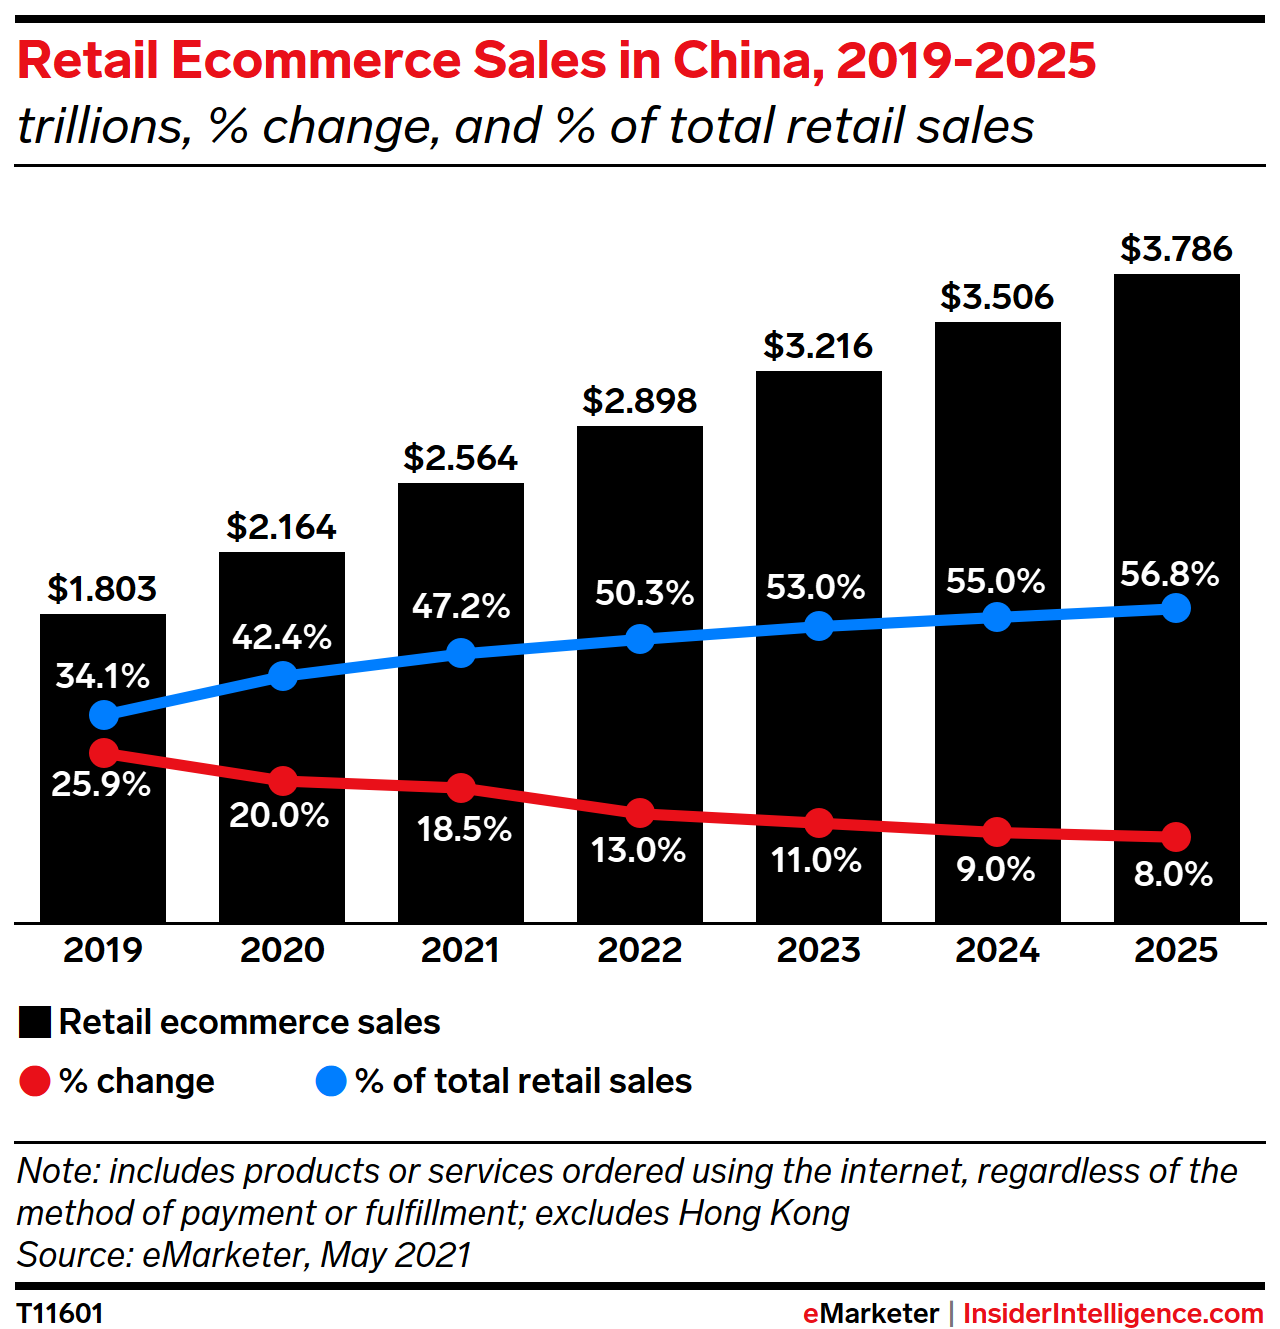 Retail Ecommerce Sales in China, 2019-2025 (trillions and % change)